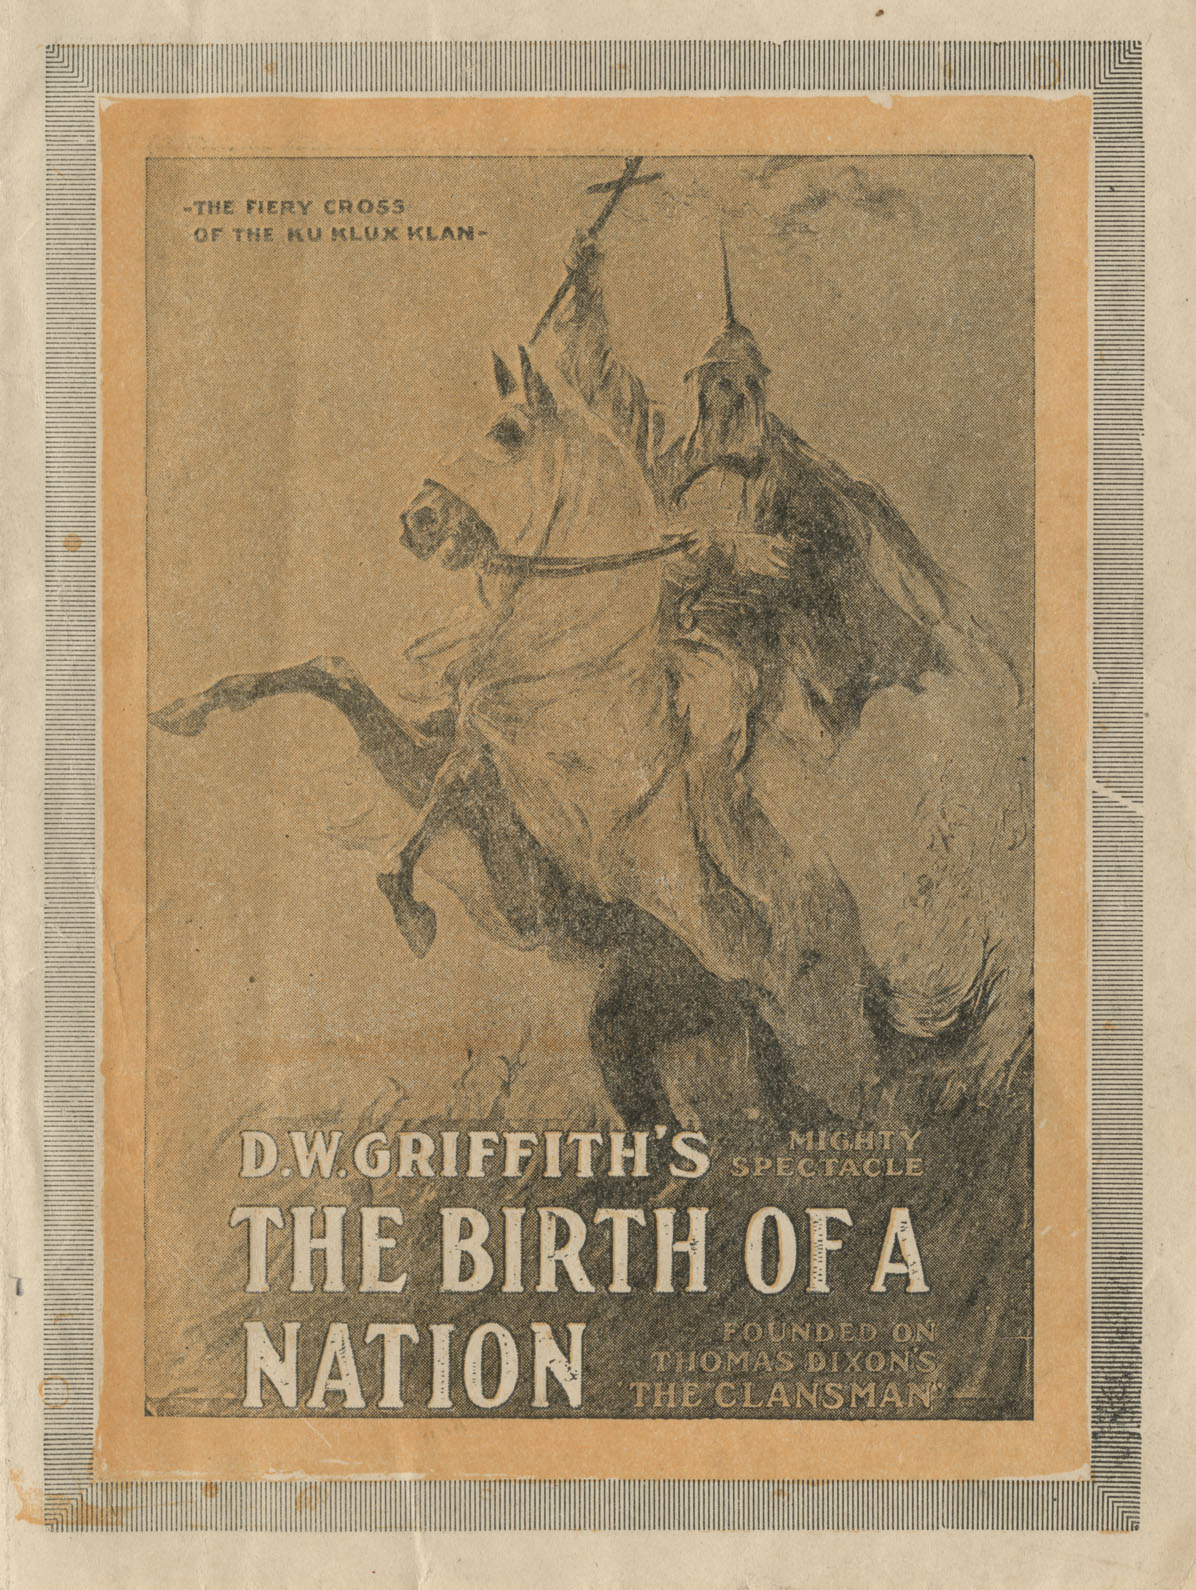 The Birth of a Nation flyer cover, depicting a cross-wielding Klan member in full regalia sitting astride a rearing horse, hints strongly at the films content and point of view.